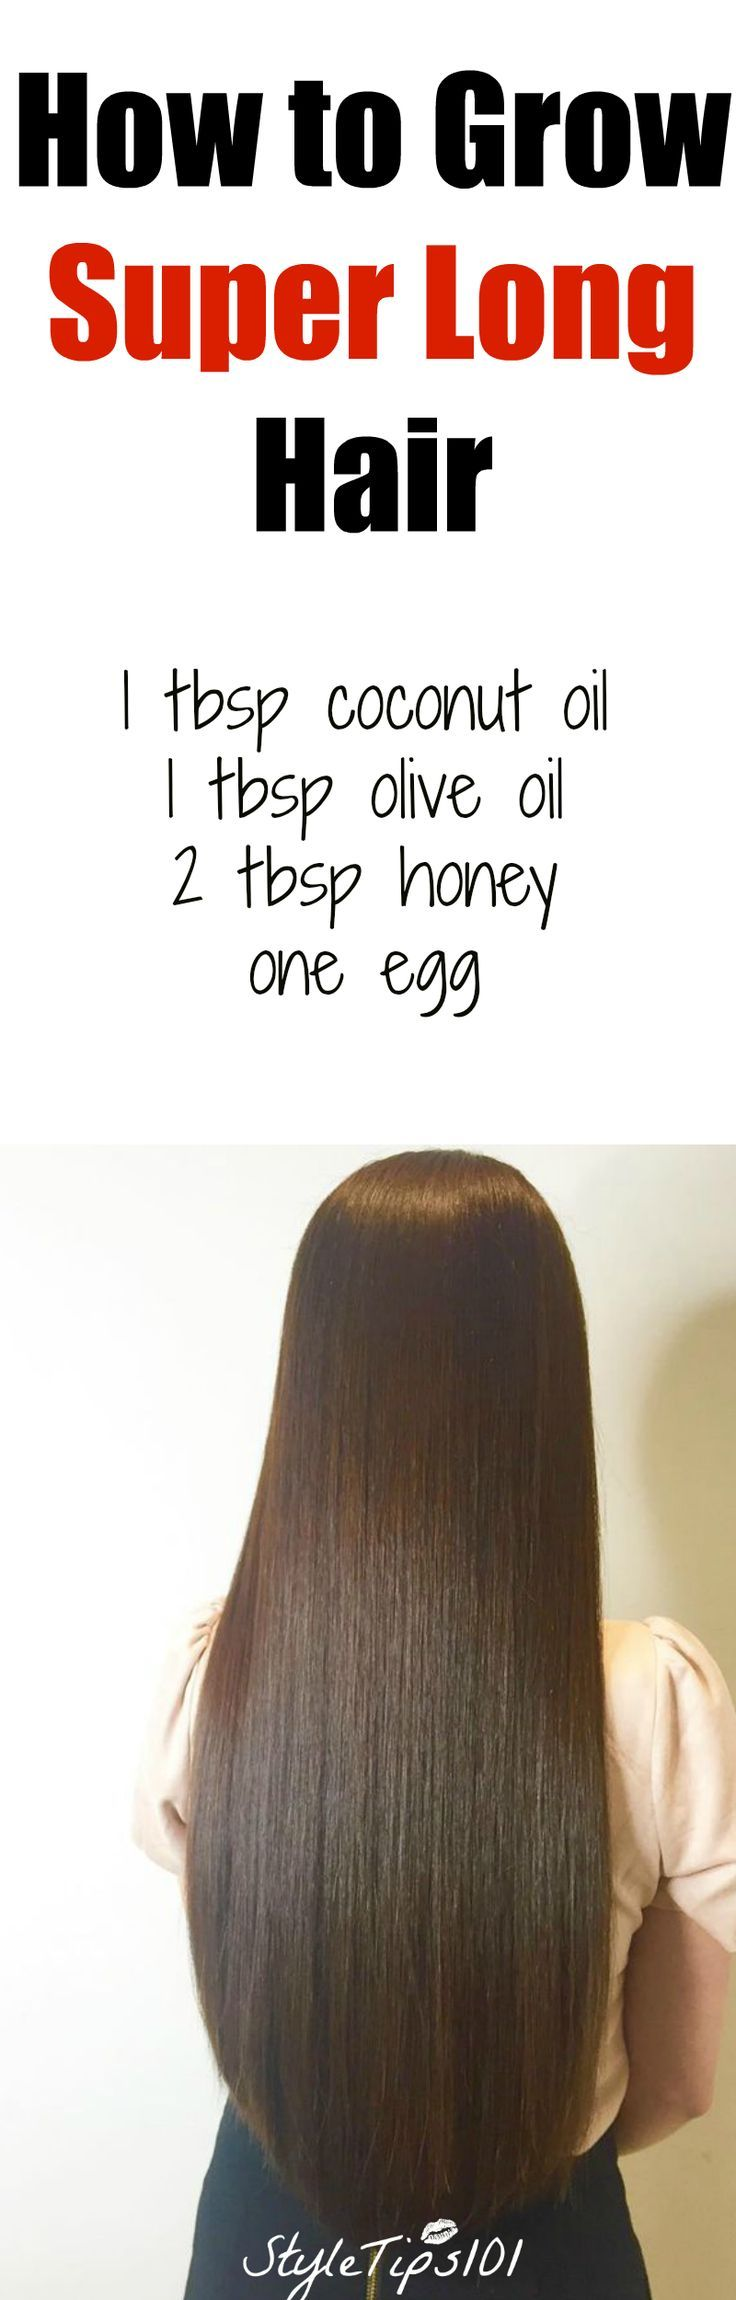 The Ultimate Hair Mask Hair Masks And Coconut Oil - How to use coconut oil on hair